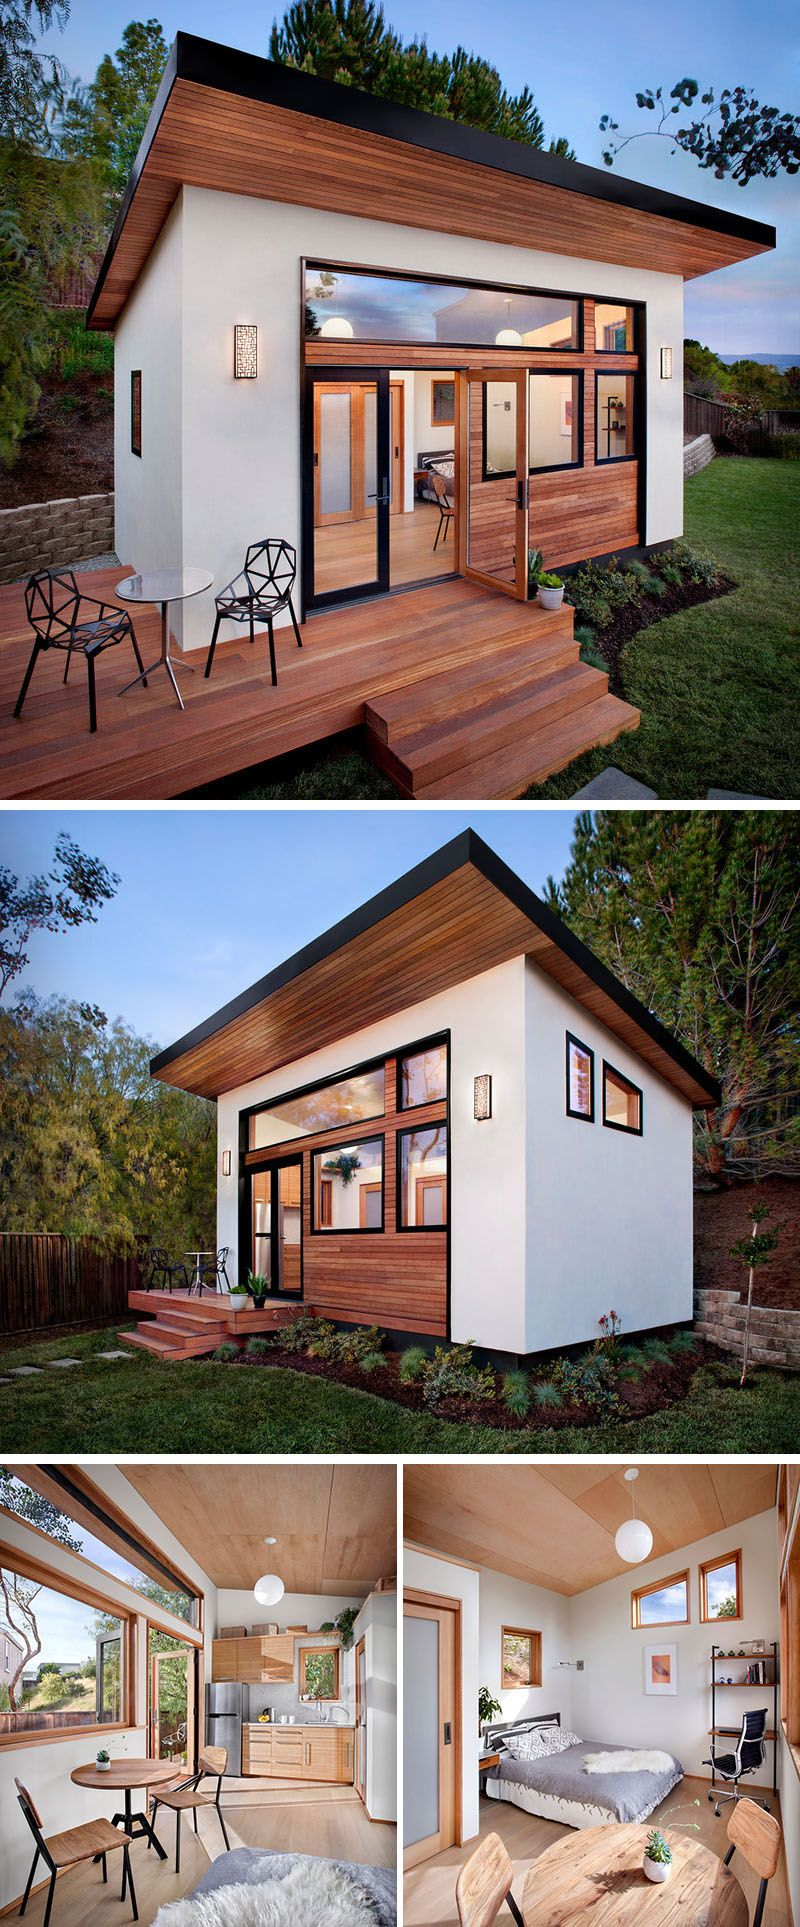 This Small Guest House Was Prefabricated Before Being Put Together In The Backyard Of Home And Features A Kitchen Bathroom Dining Spot Sleeping Area